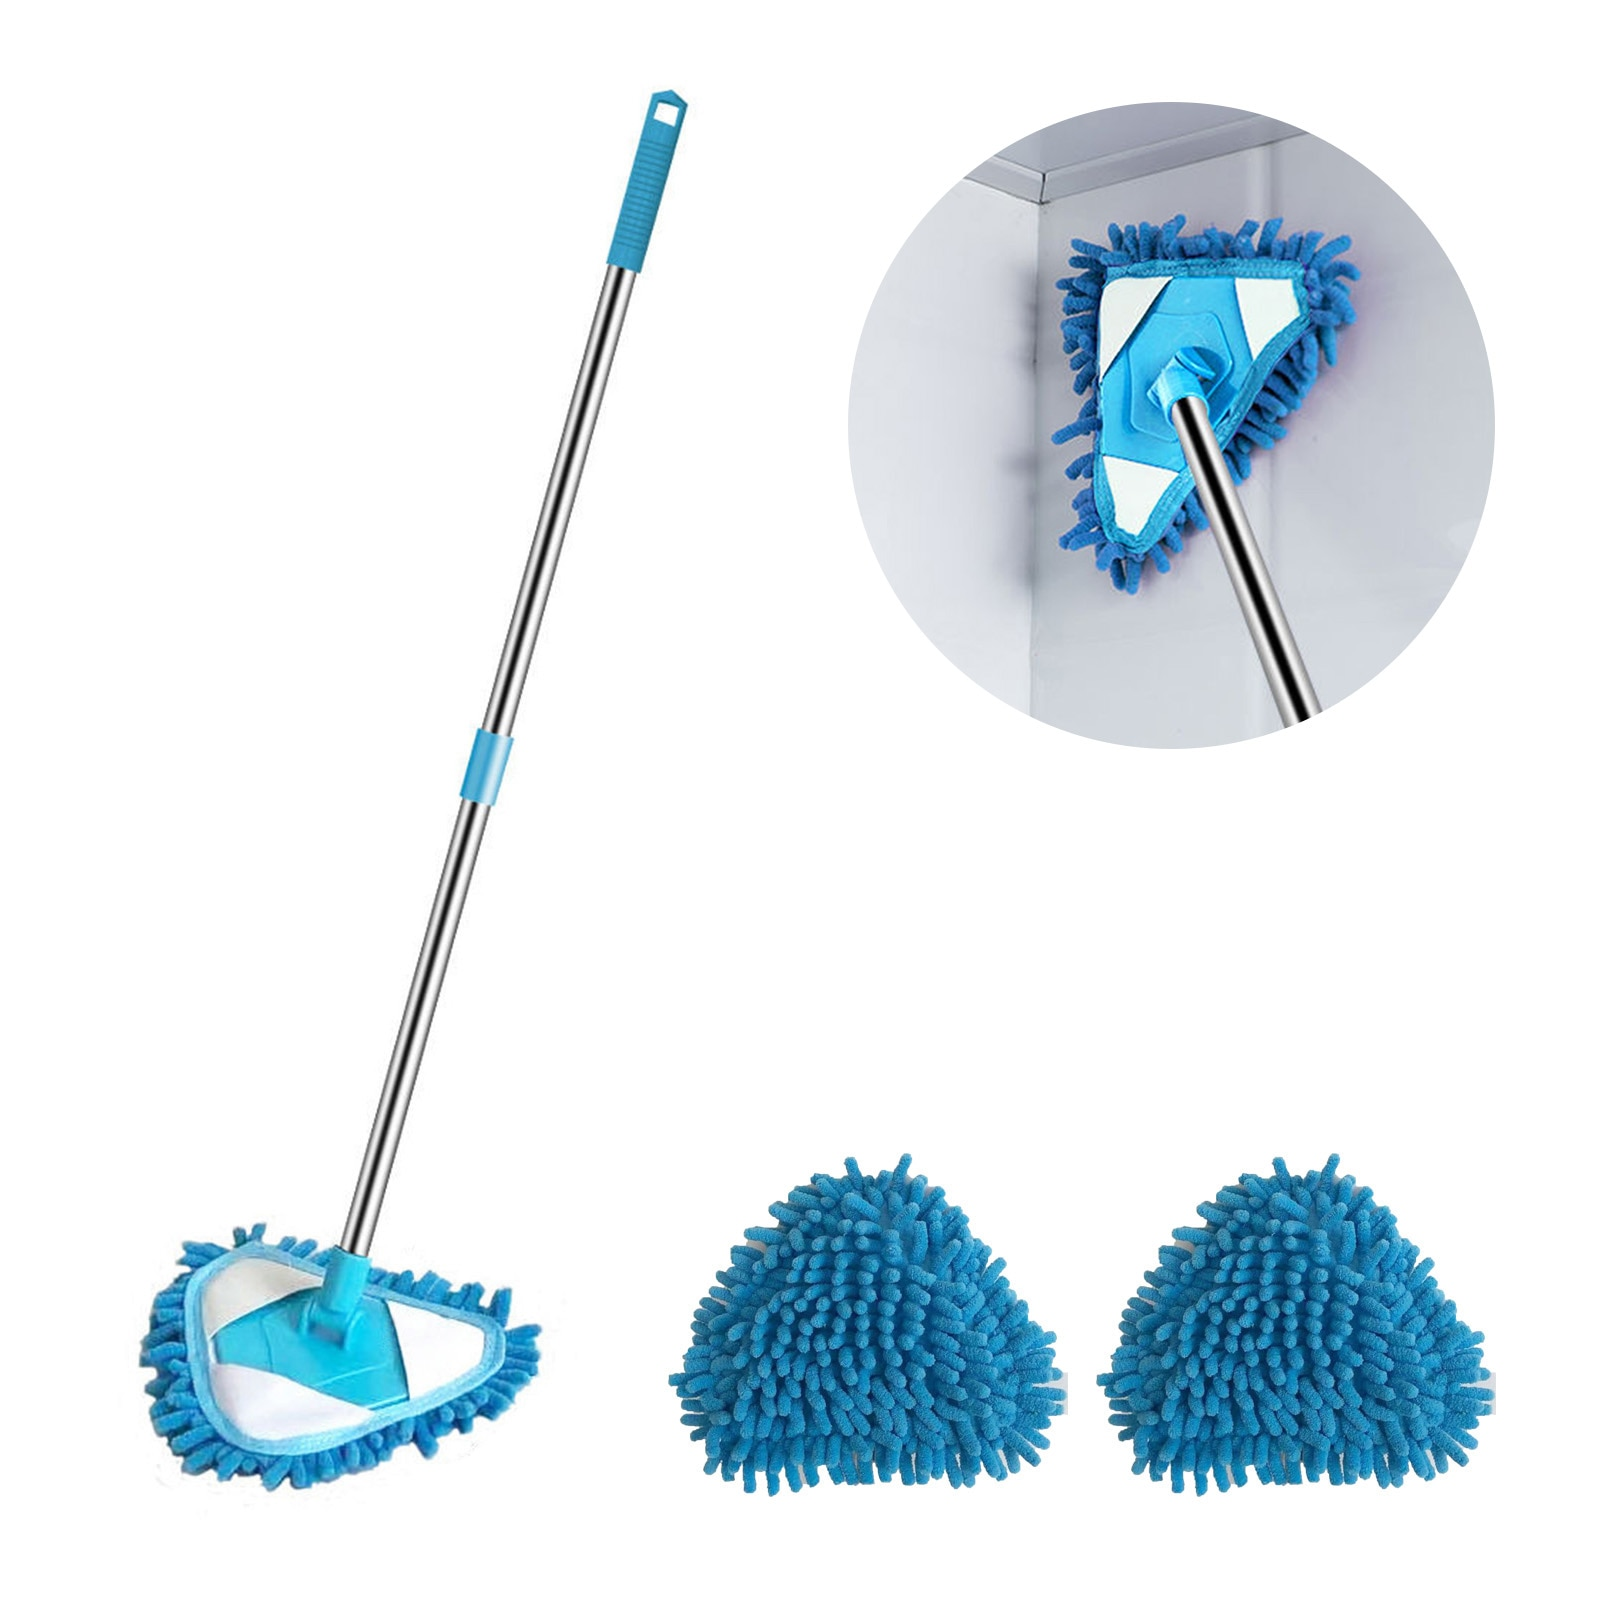 lazy triangle cleaning mop retractable instant water cleaning mop rotatable triangle dust mop for mirror glass ceiling corn Lazy Triangle Cleaning Mop Retractable instant Water Cleaning Mop Rotatable Triangle Dust Mop For Mirror, Glass, Ceiling,corn